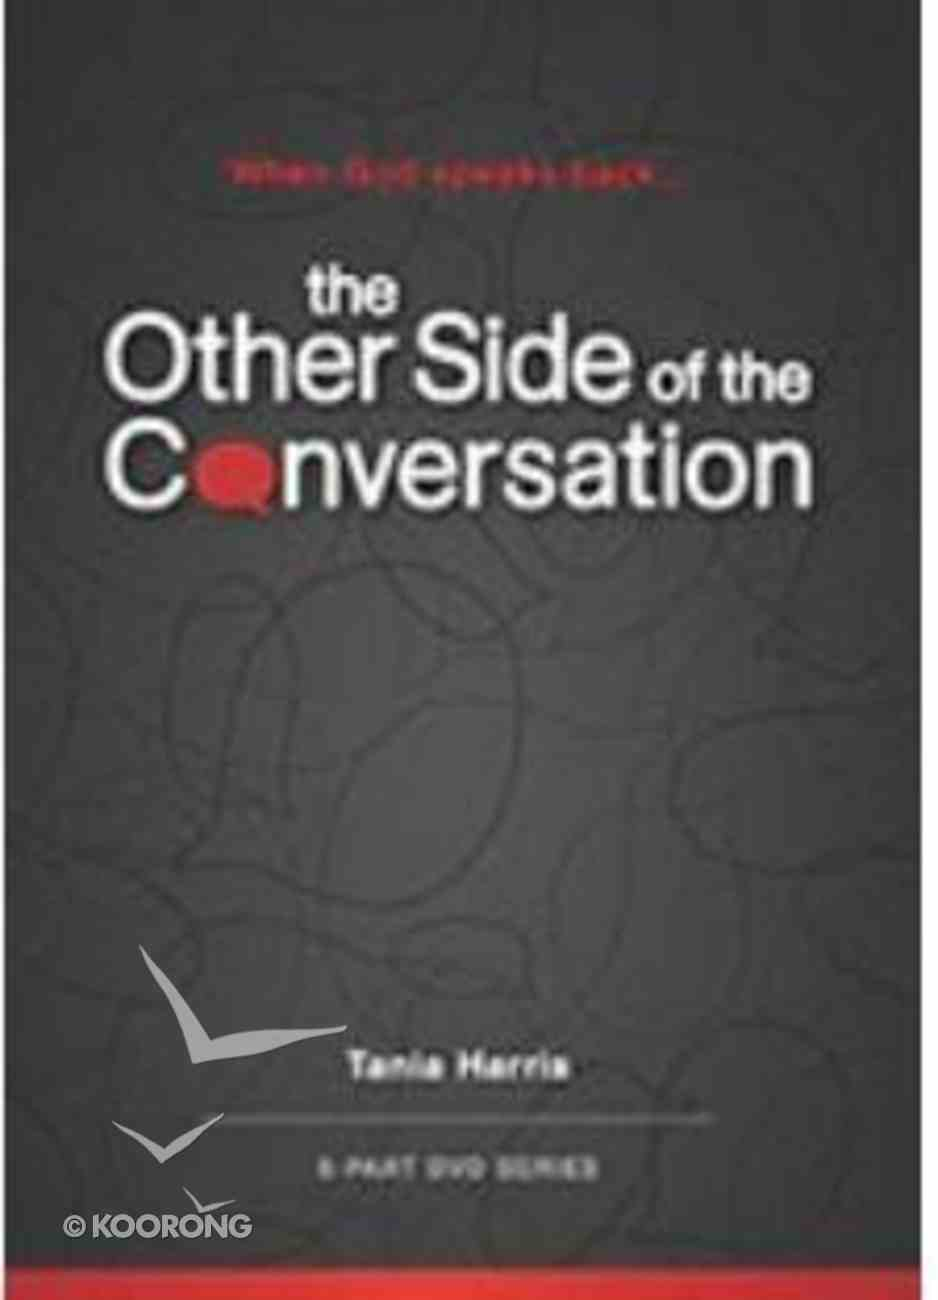 The Other Side of the Conversation (Dvd & Guidebook) Pack